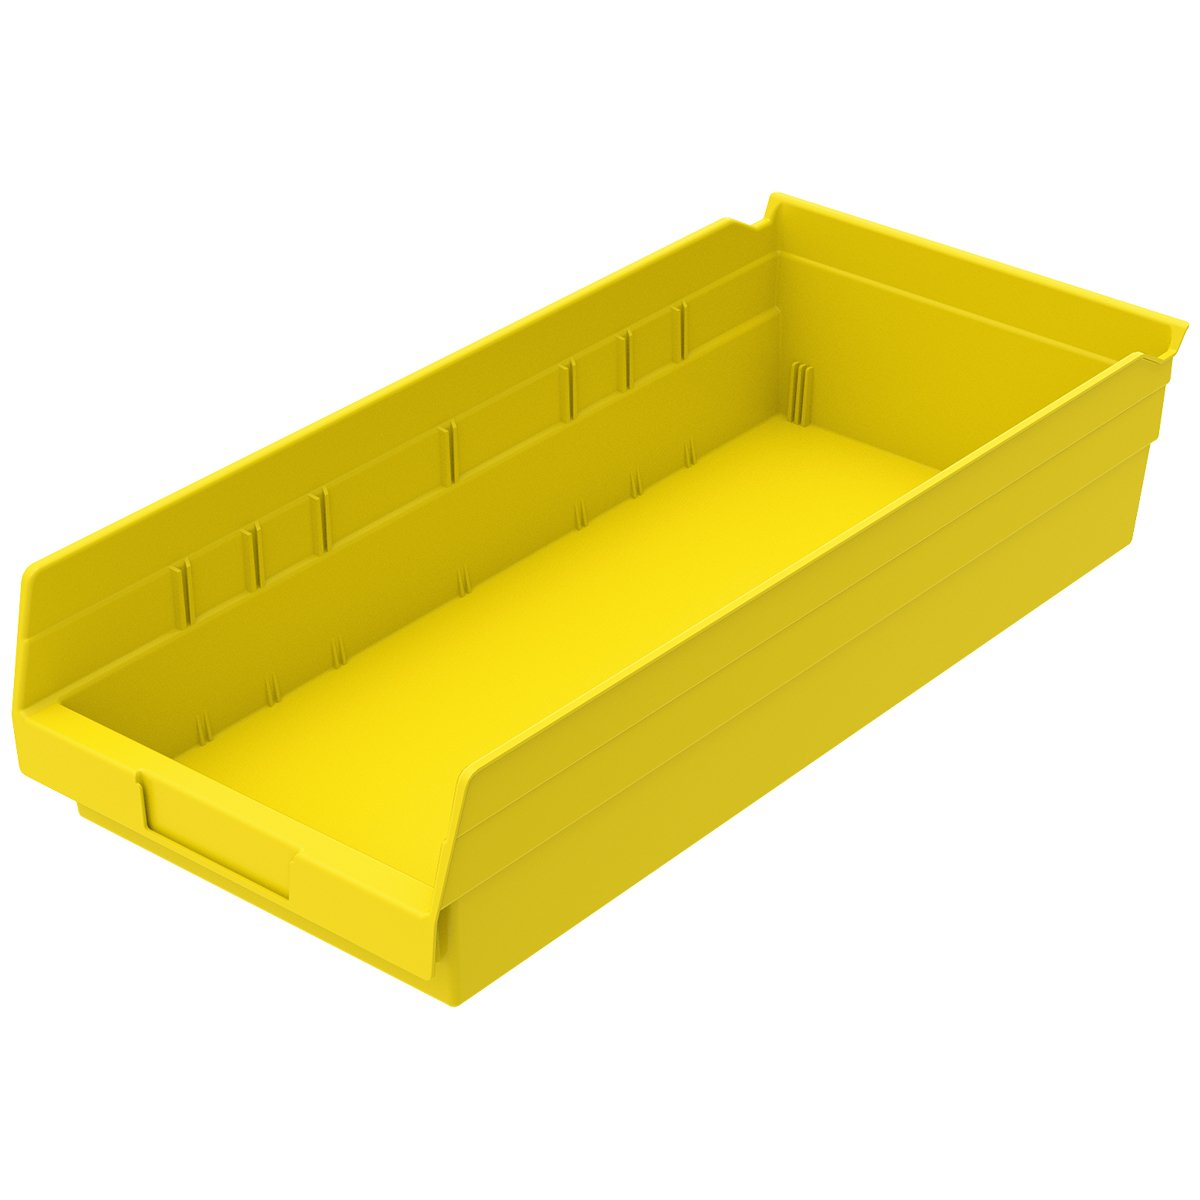 Akro-Mils 30158YELLO Shelf Bin (Case of 12), 17-7/8'' x 8-3/8'' x 4'', Yellow